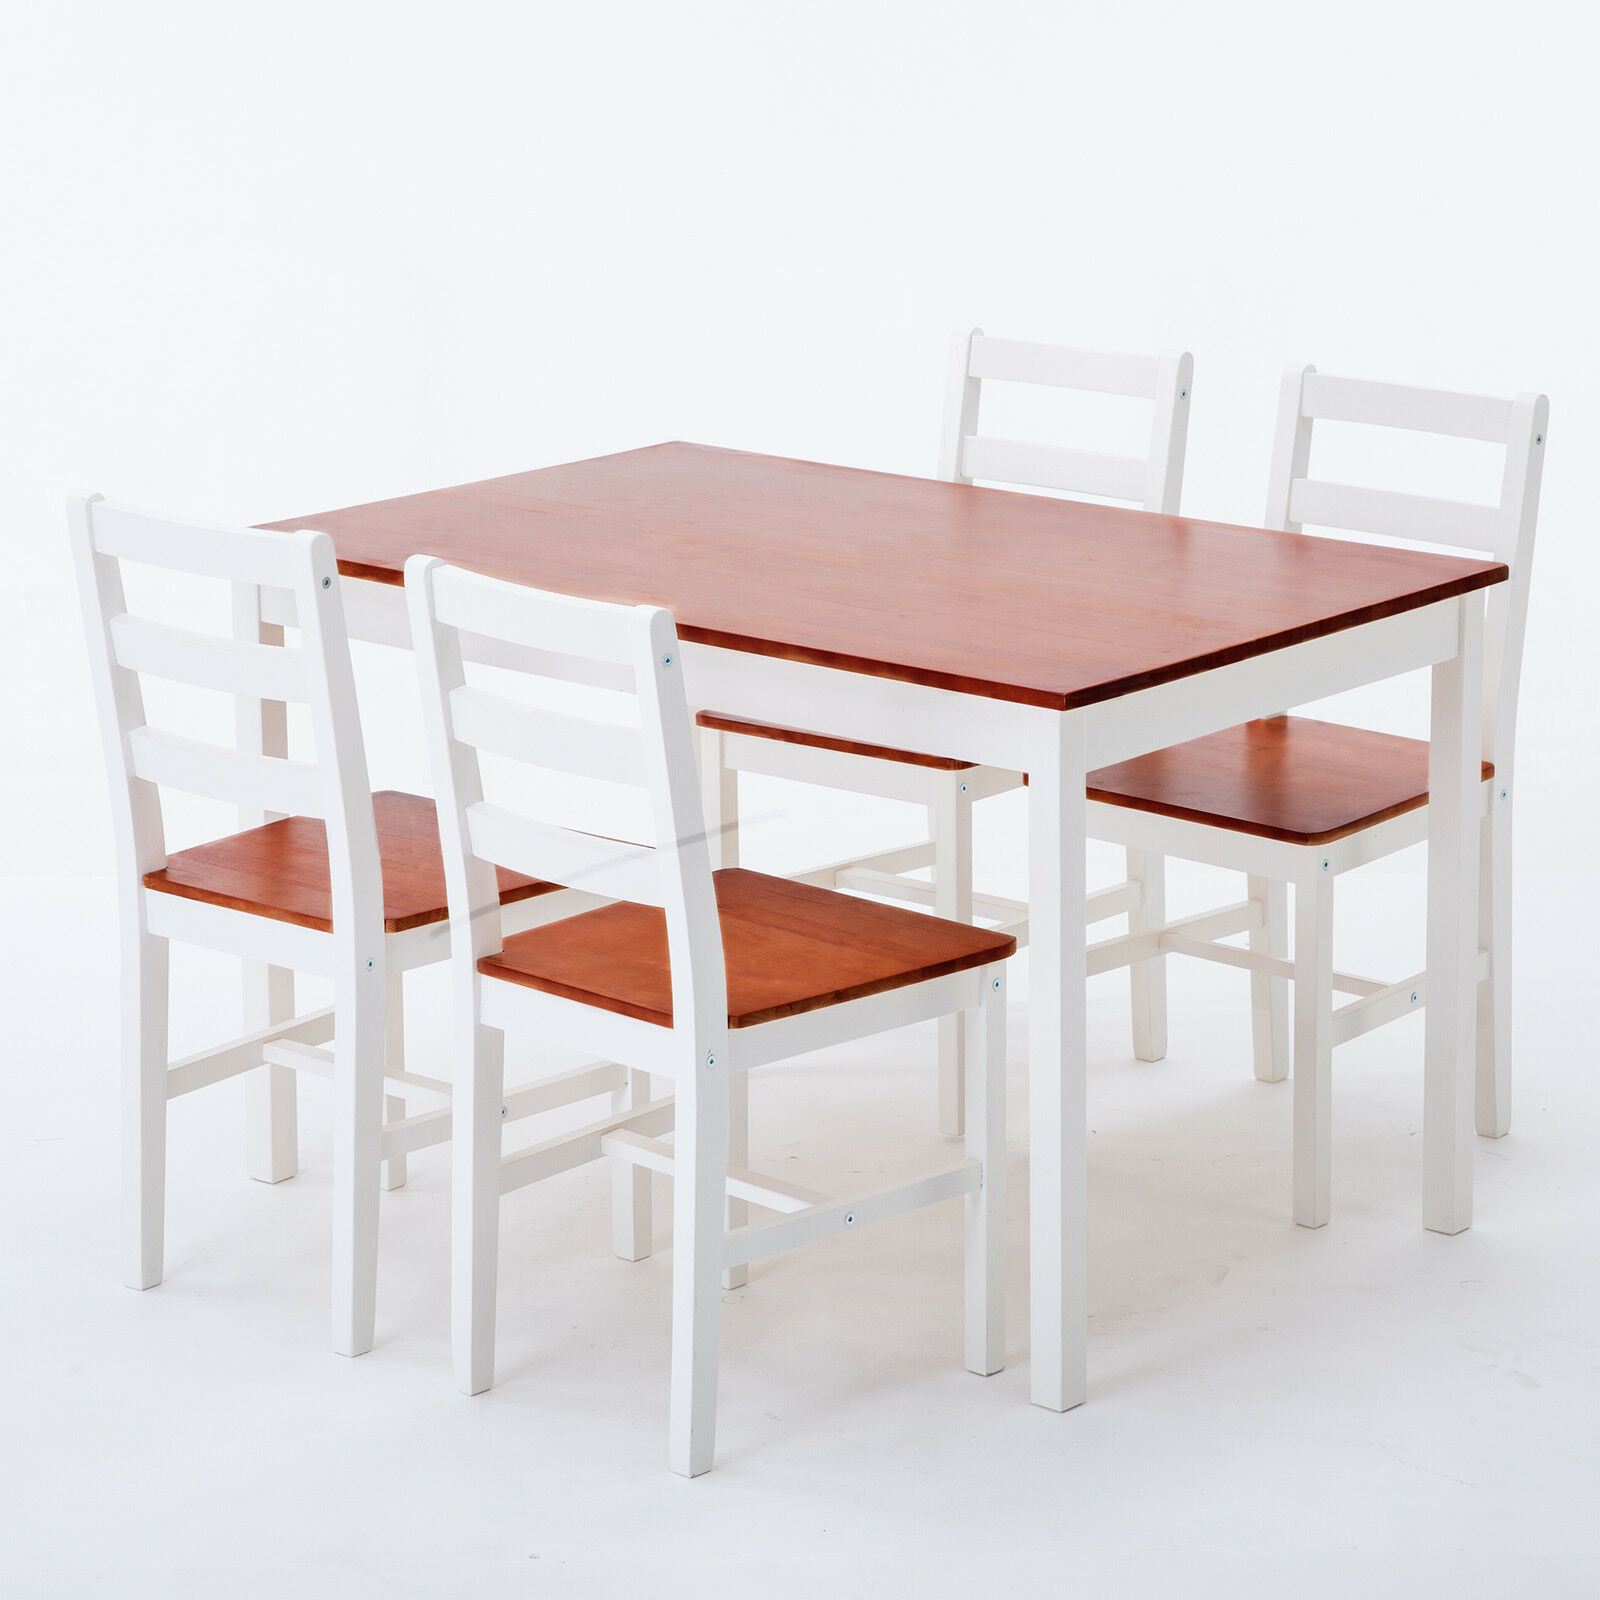 Modern Dining Table Pine Wood 4 Chairs Room Set Breakfast Kitchen Furniture